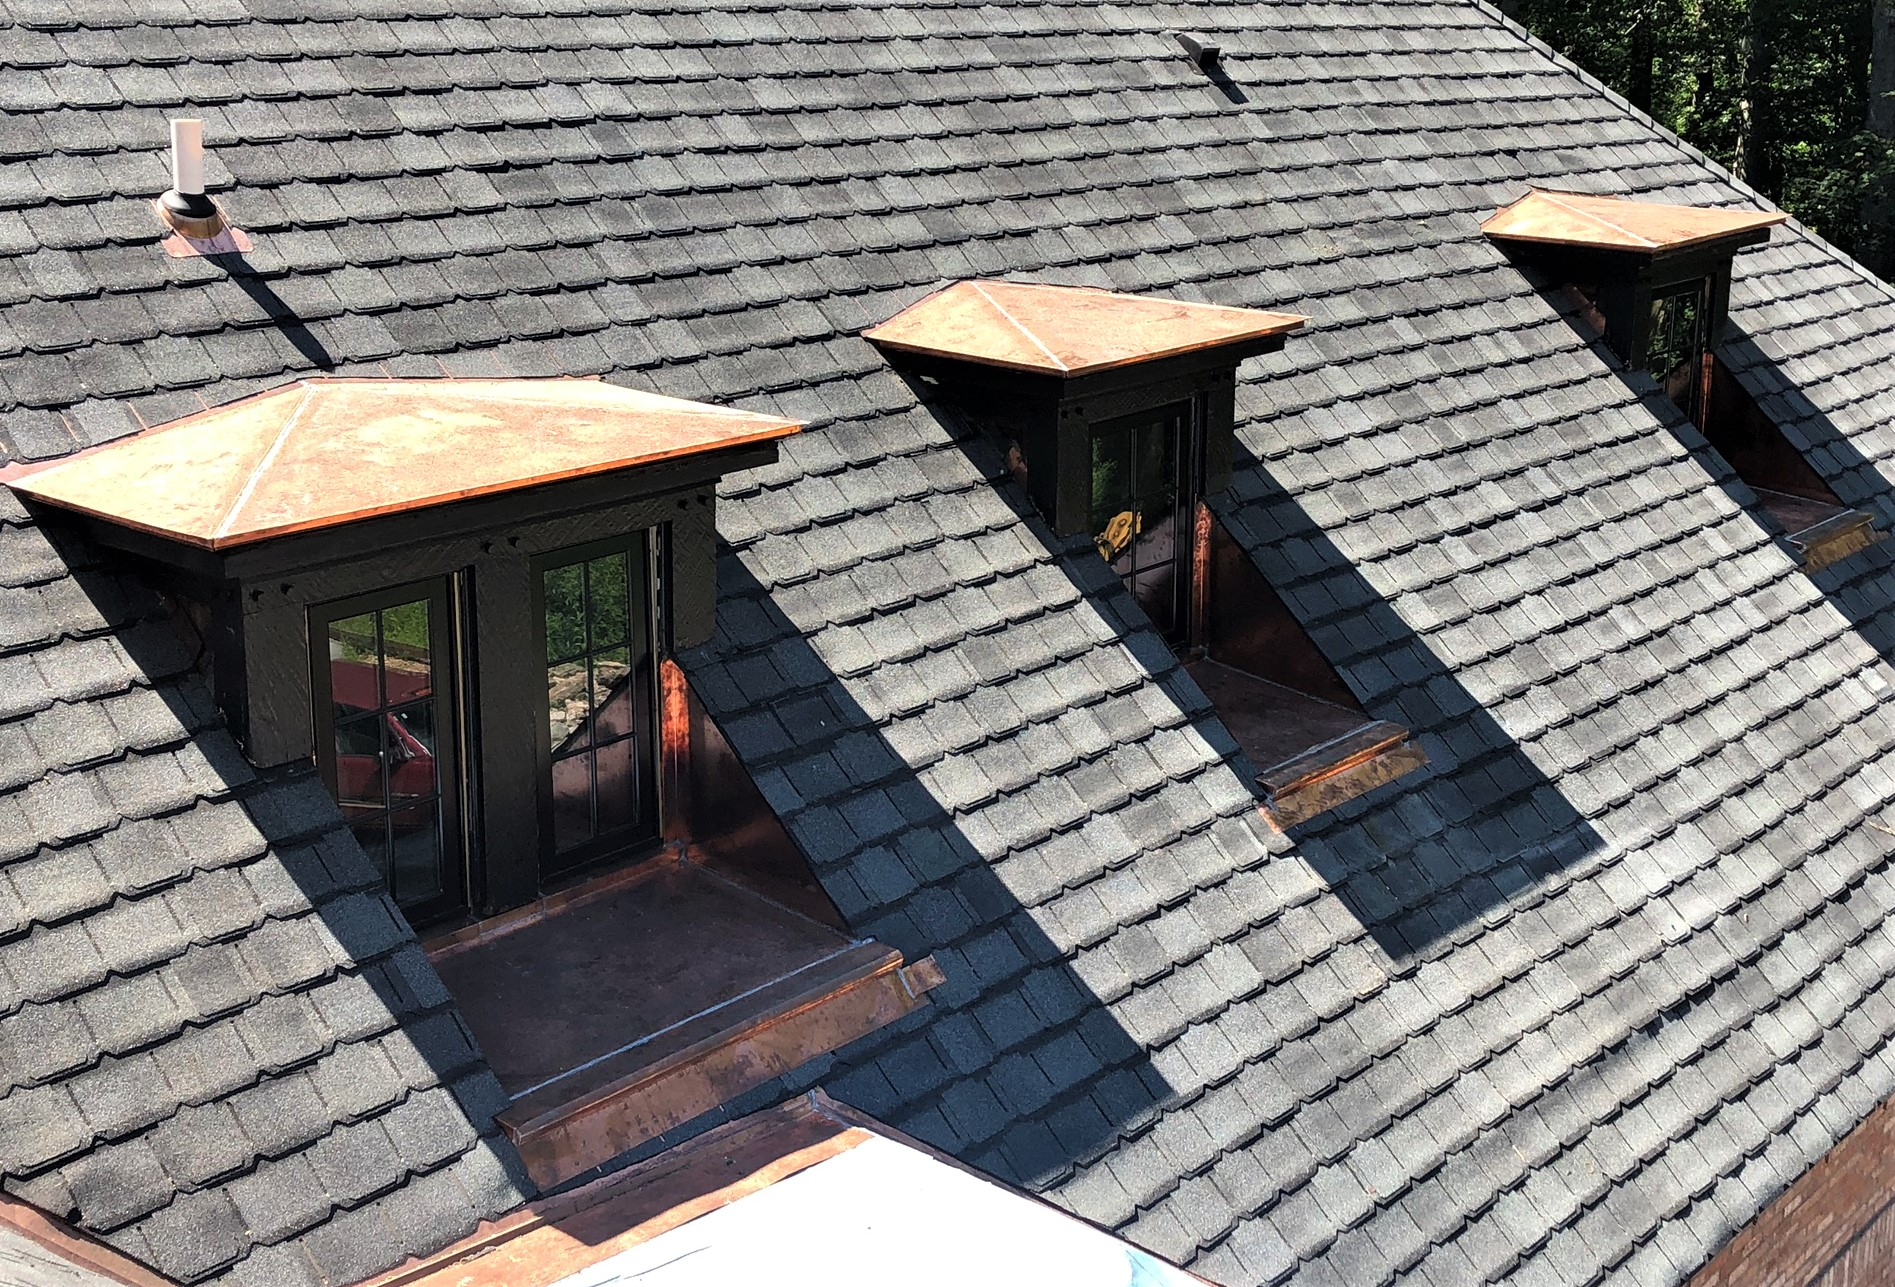 Shingle roof with copper accents